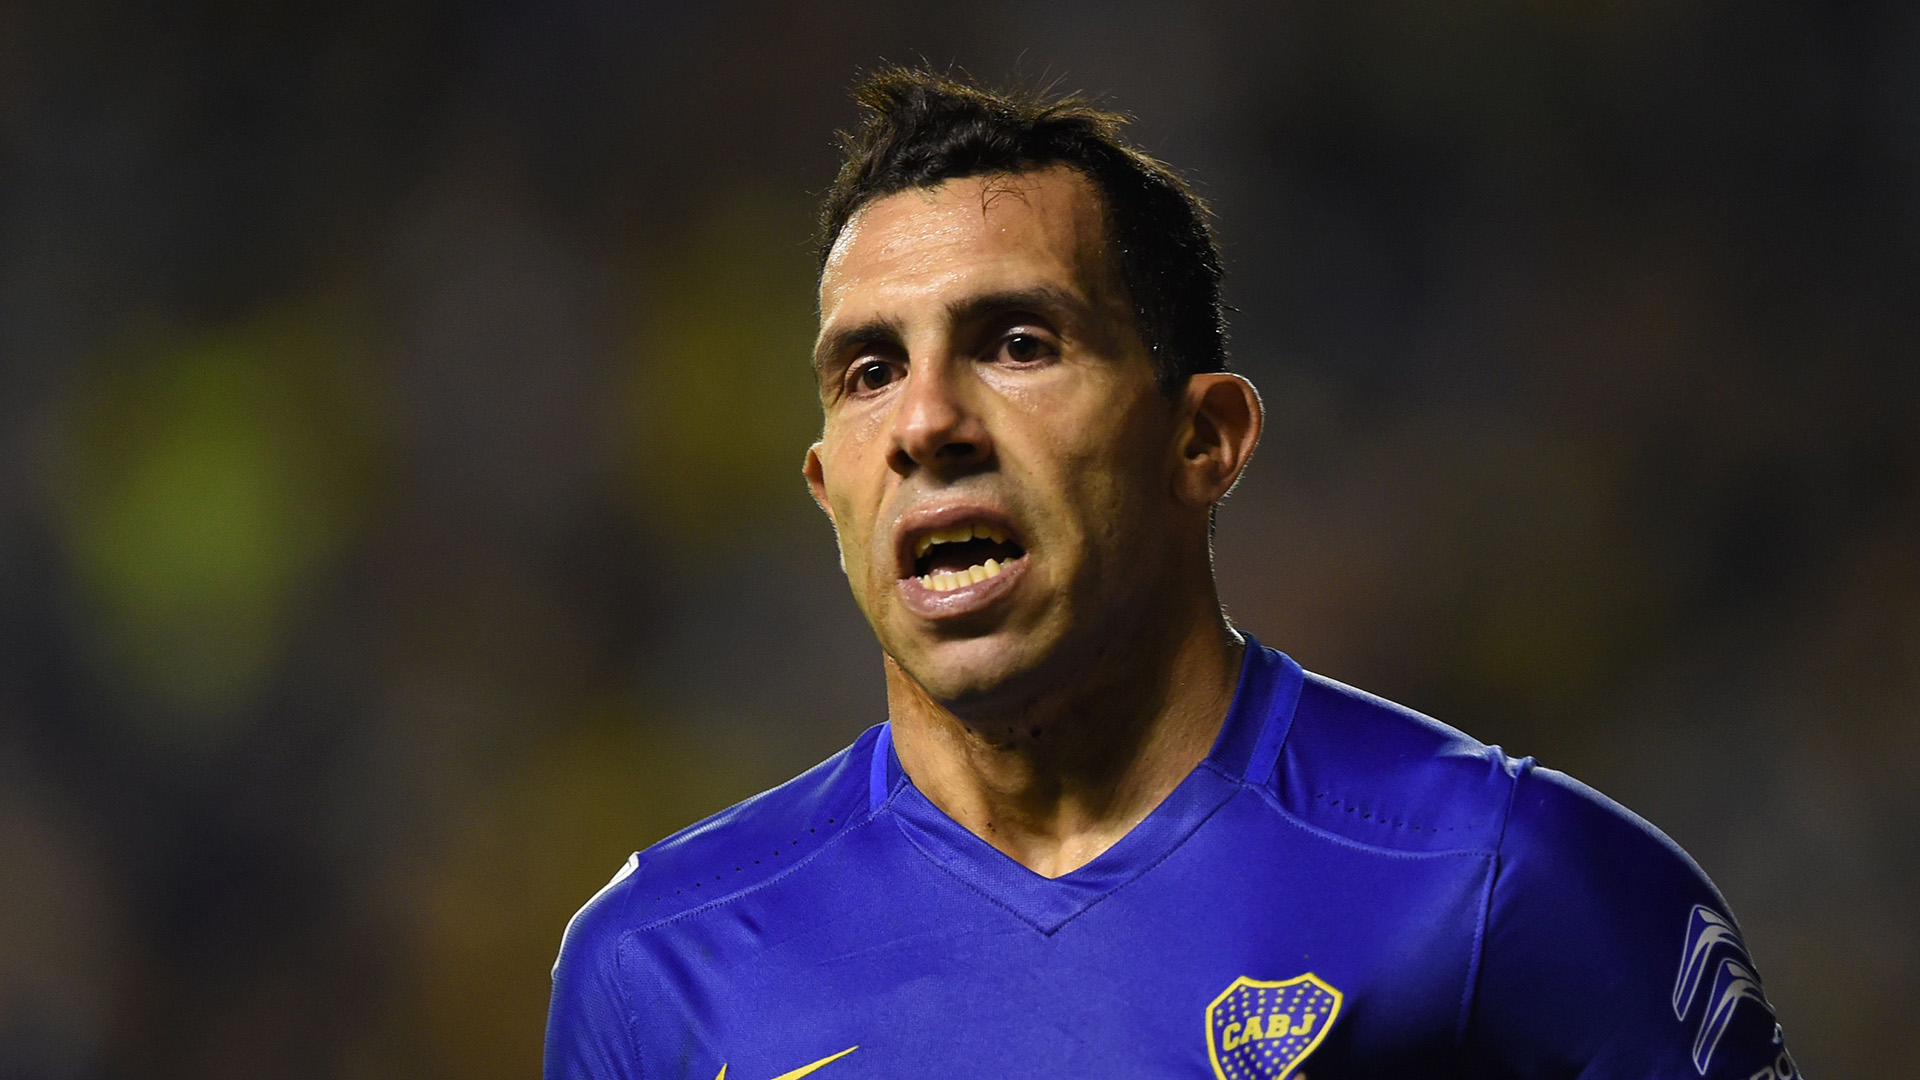 Messi will only leave Barcelona for Newell's Old Boys, claims Tevez